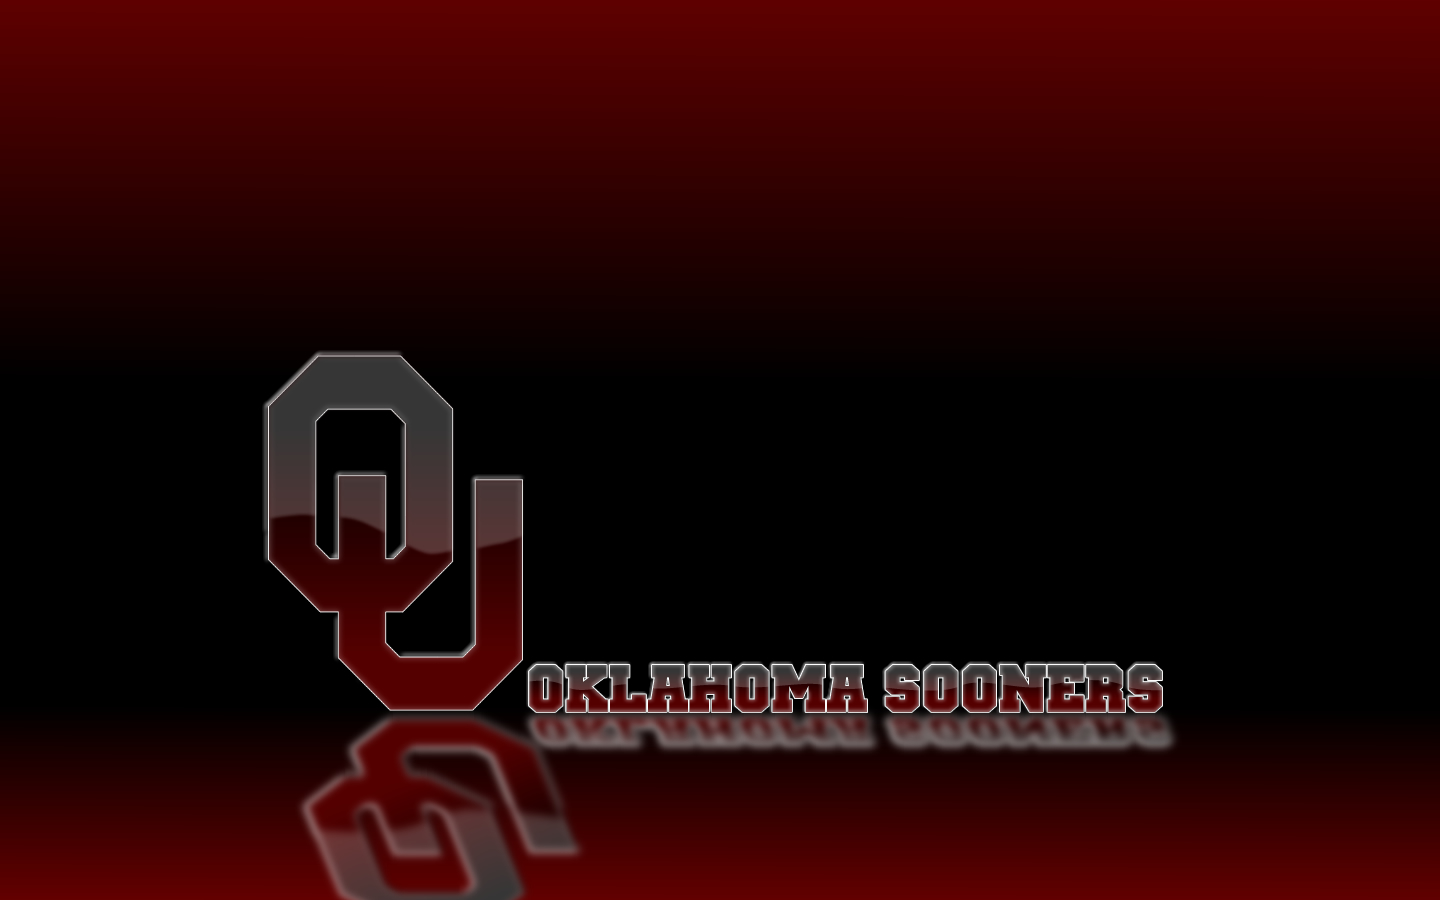 home football ou tx tiles contact 1440x900